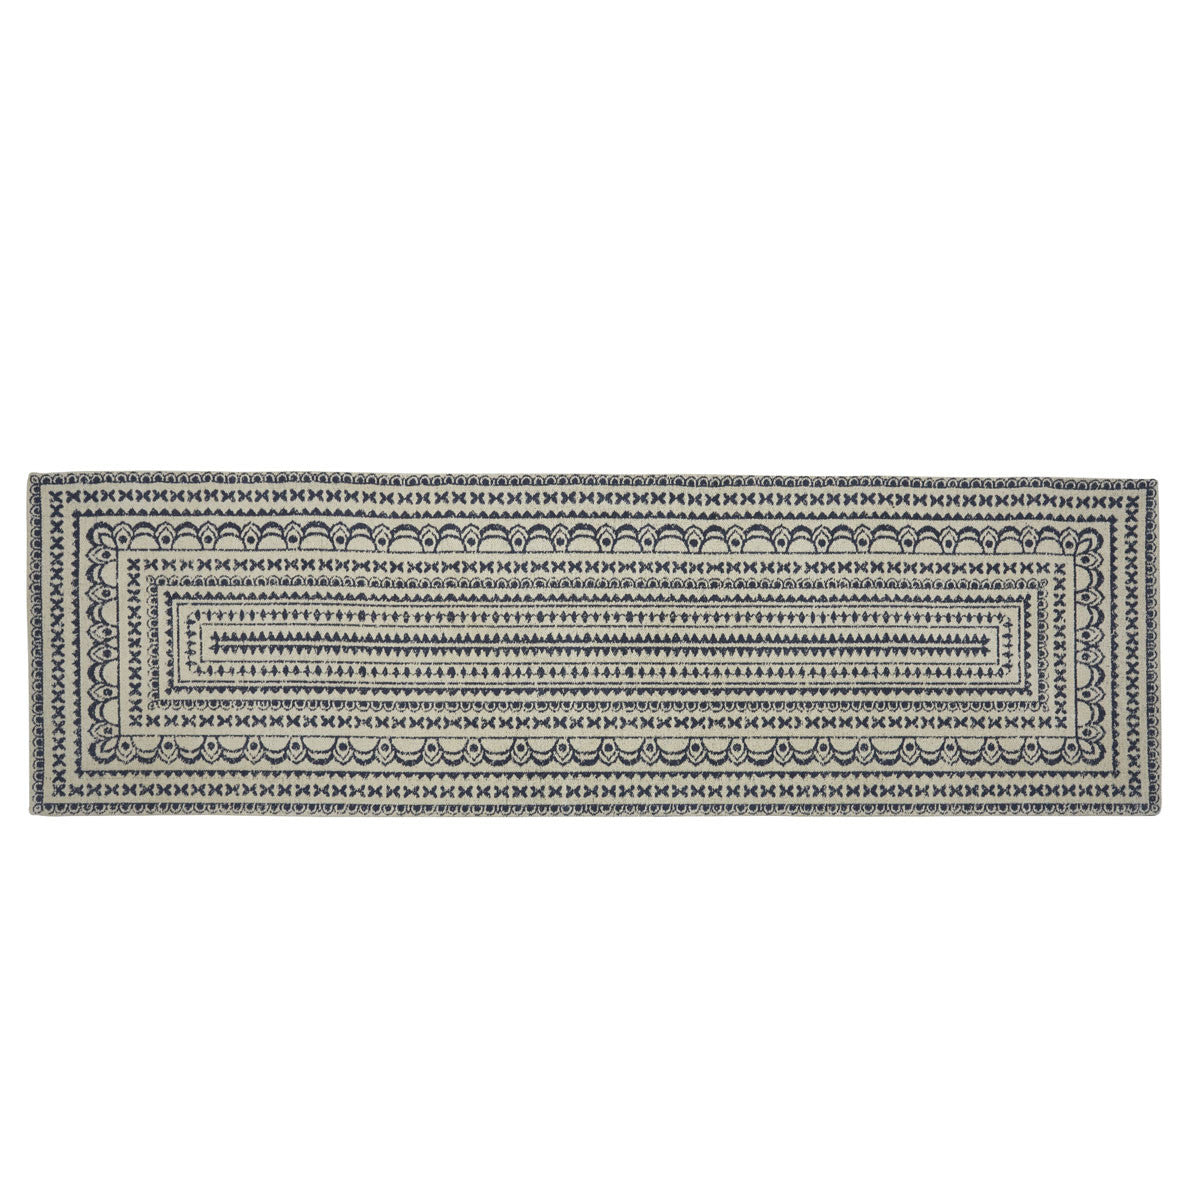 ZURI MEDALLION PRINTED RUG 2'X6' - NAVY